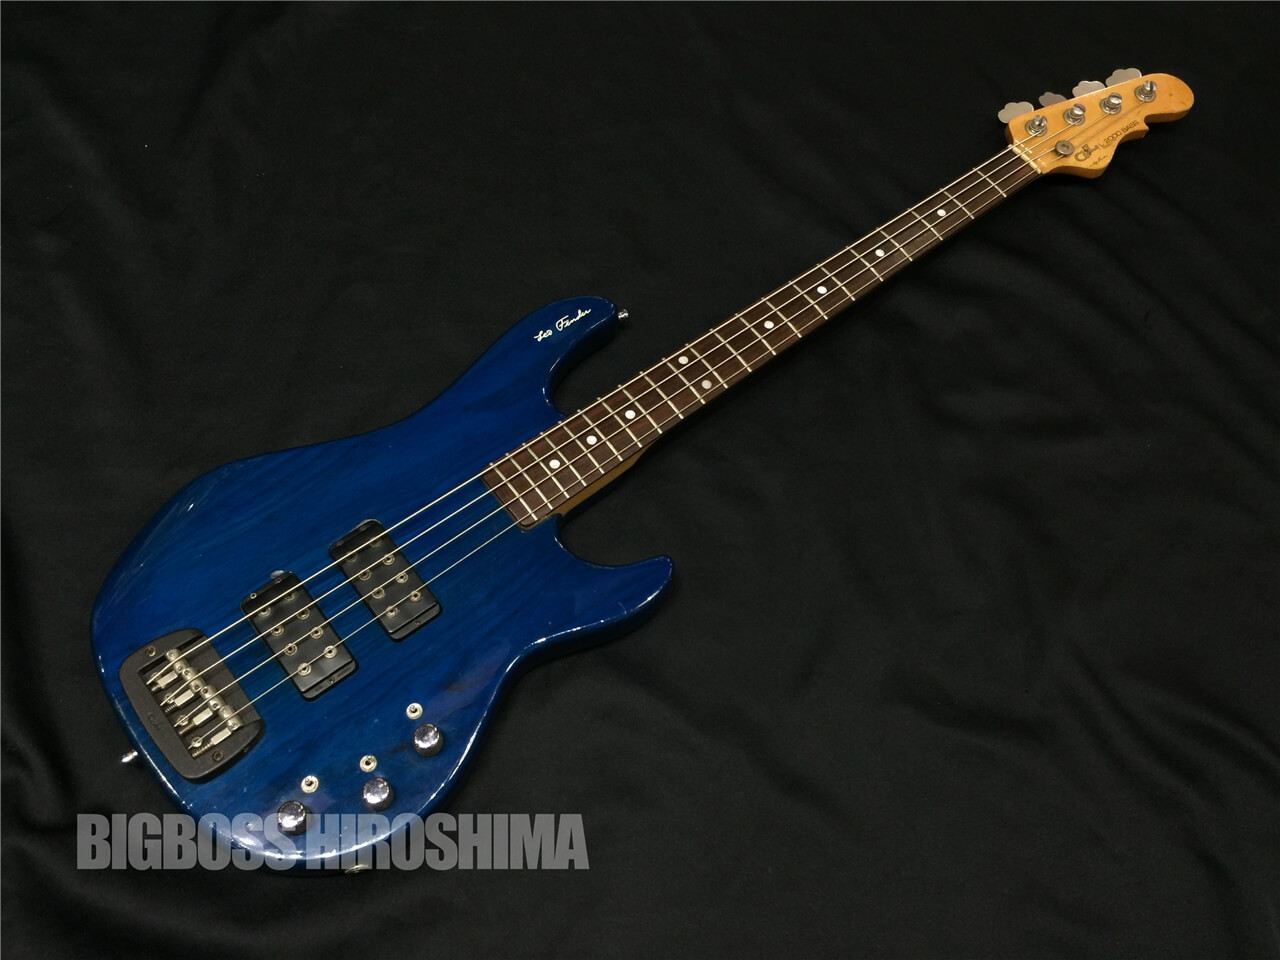 【中古品】G&L USA Series L-2000 (See Thru Blue) 広島店